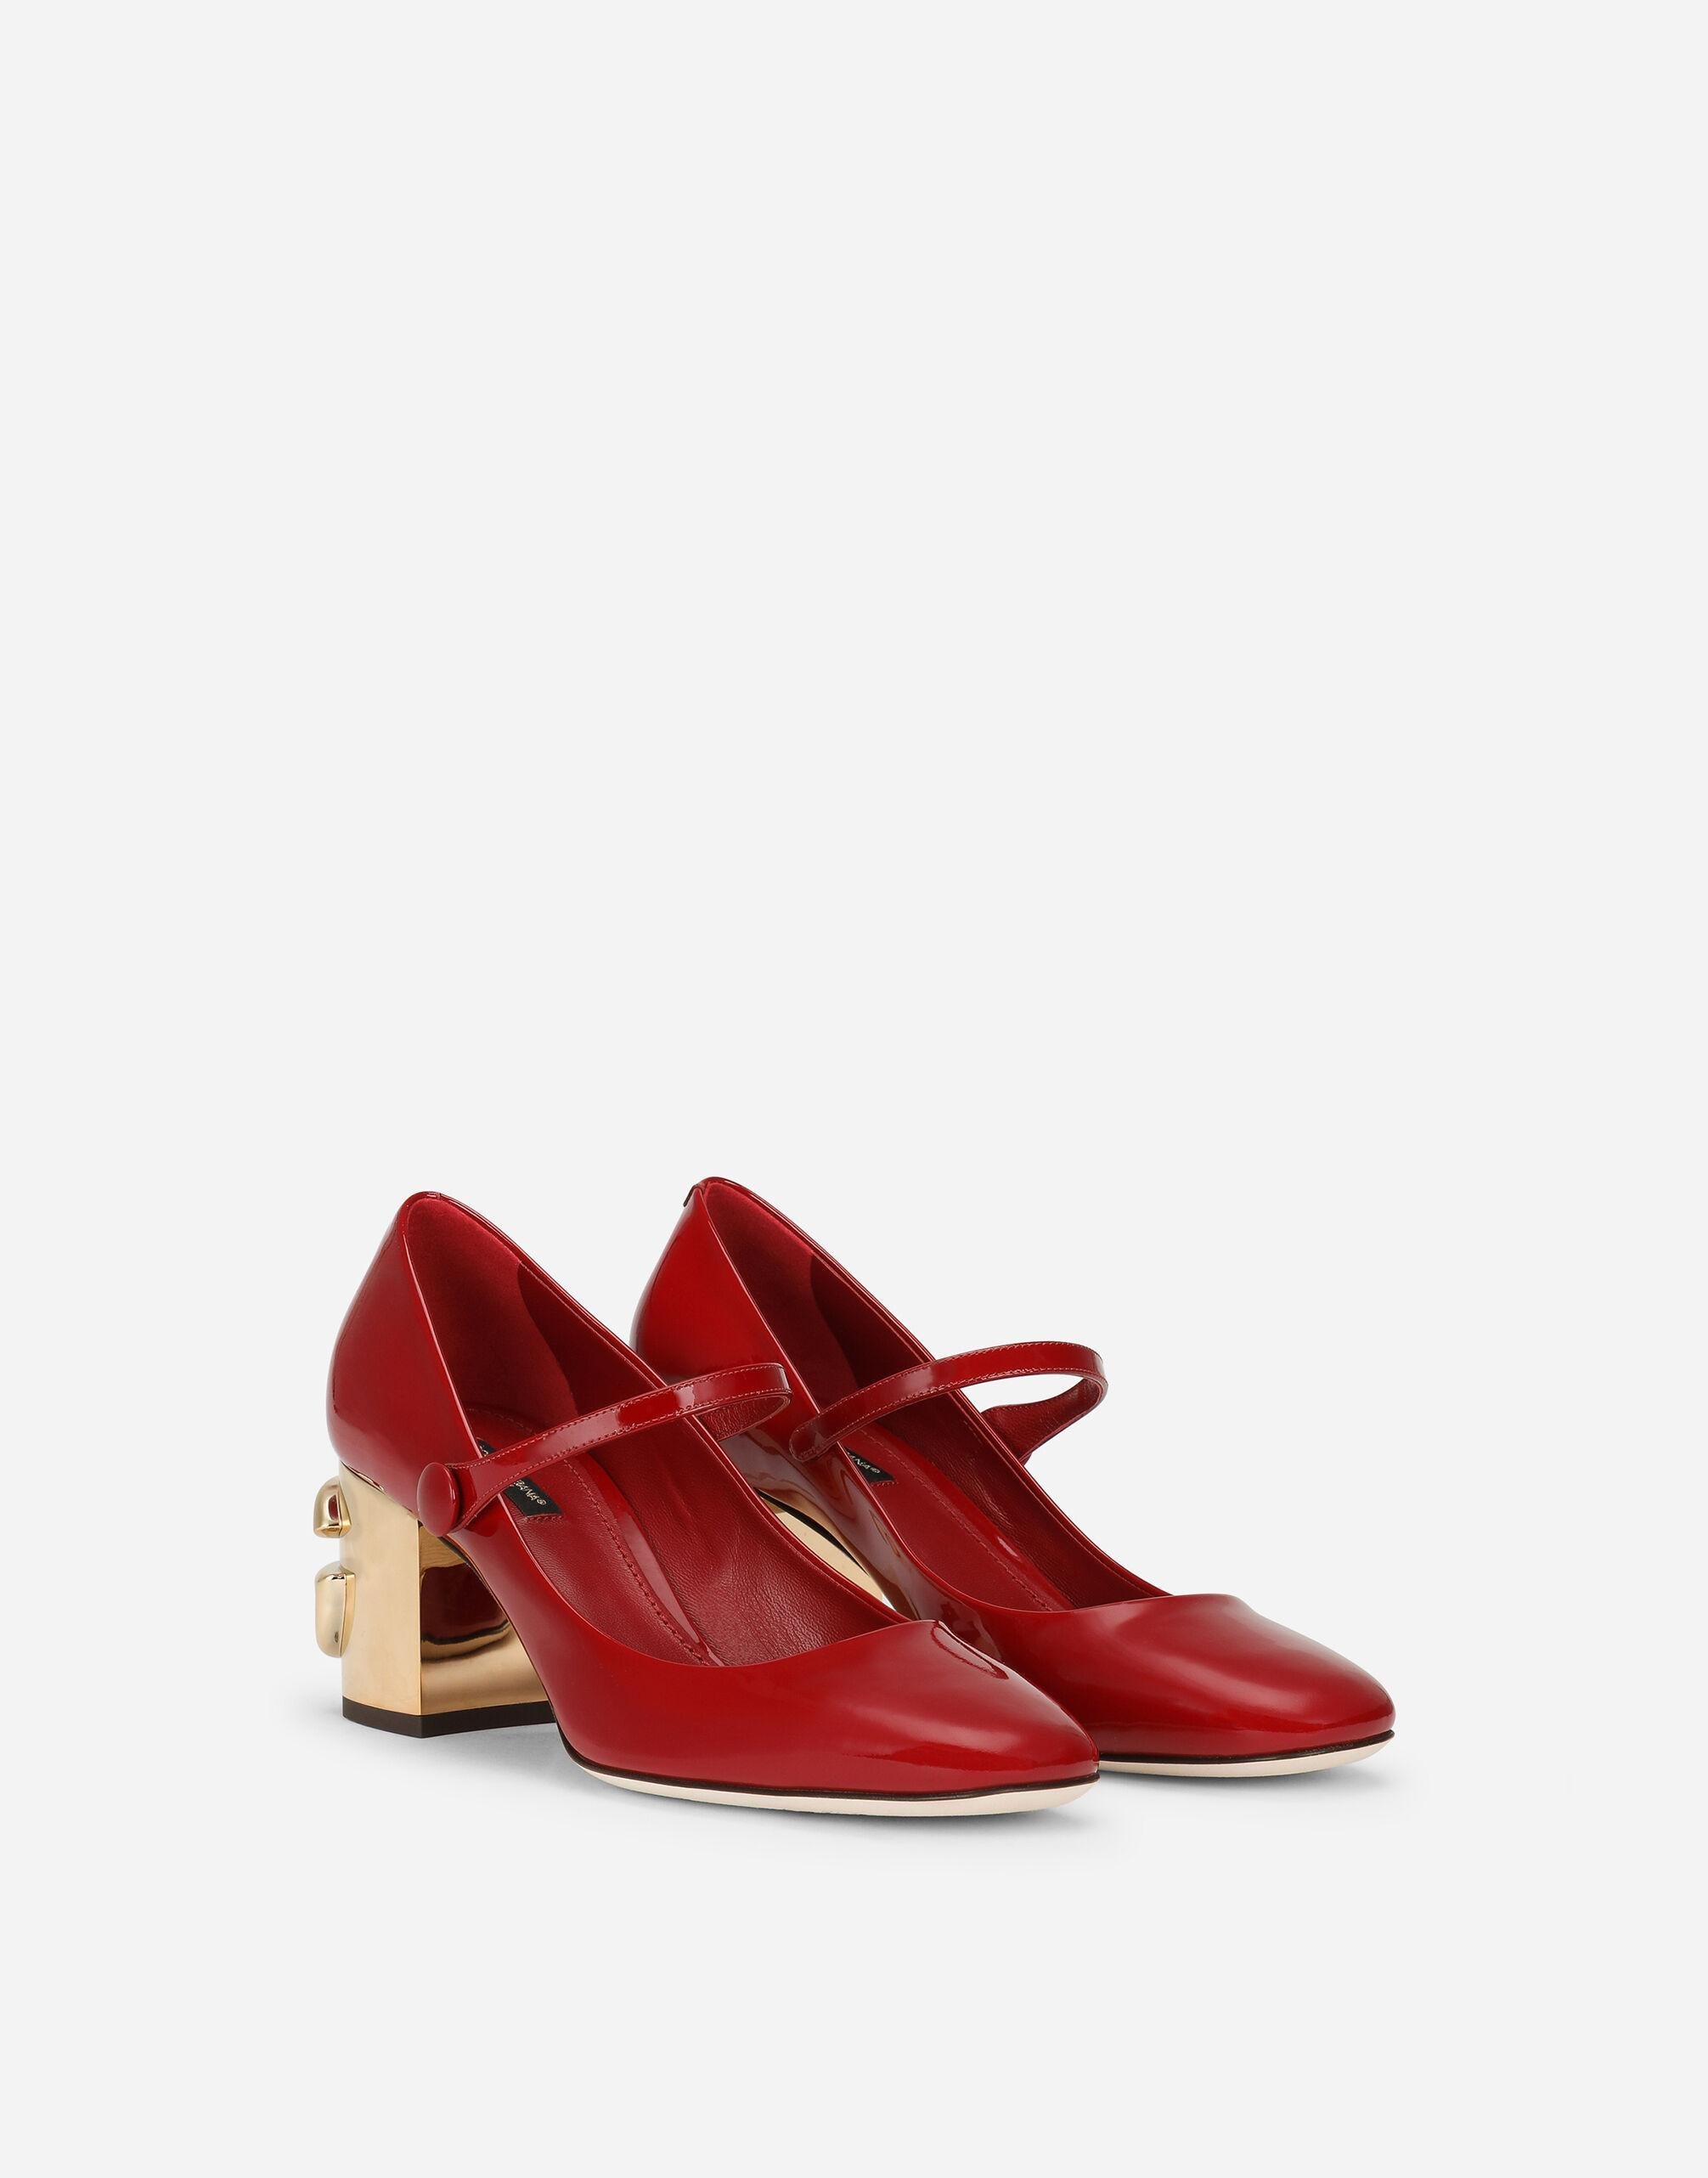 Patent leather Mary Janes with DG Karol heel 1